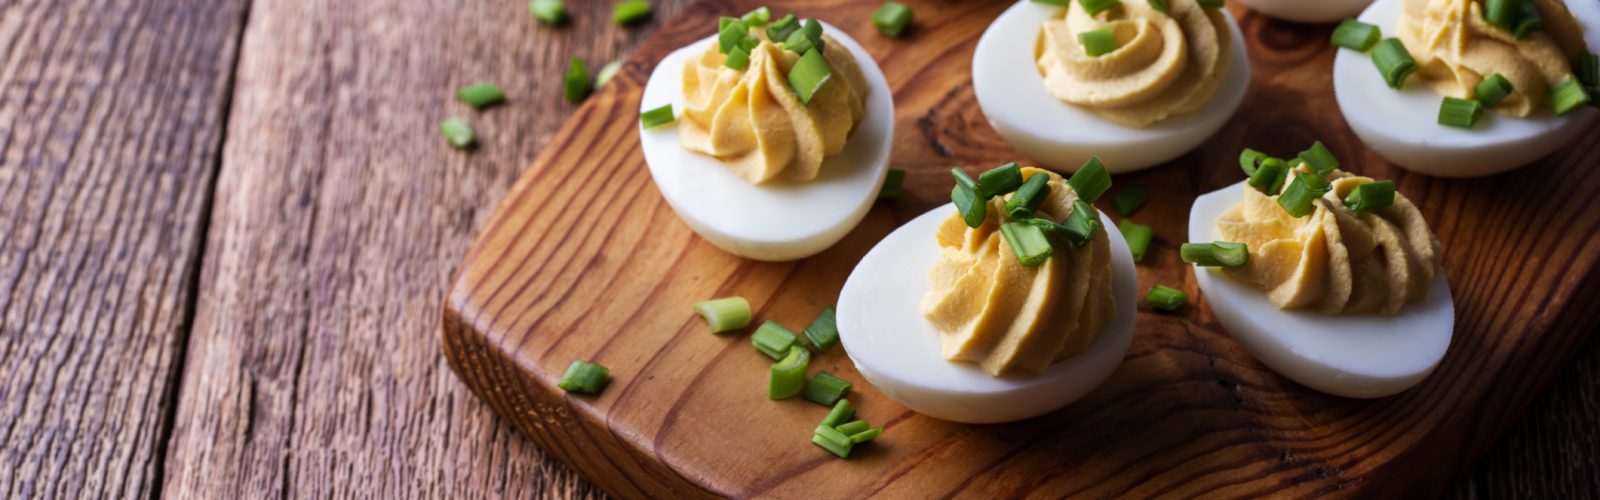 a plate of deviled eggs on a wooden table